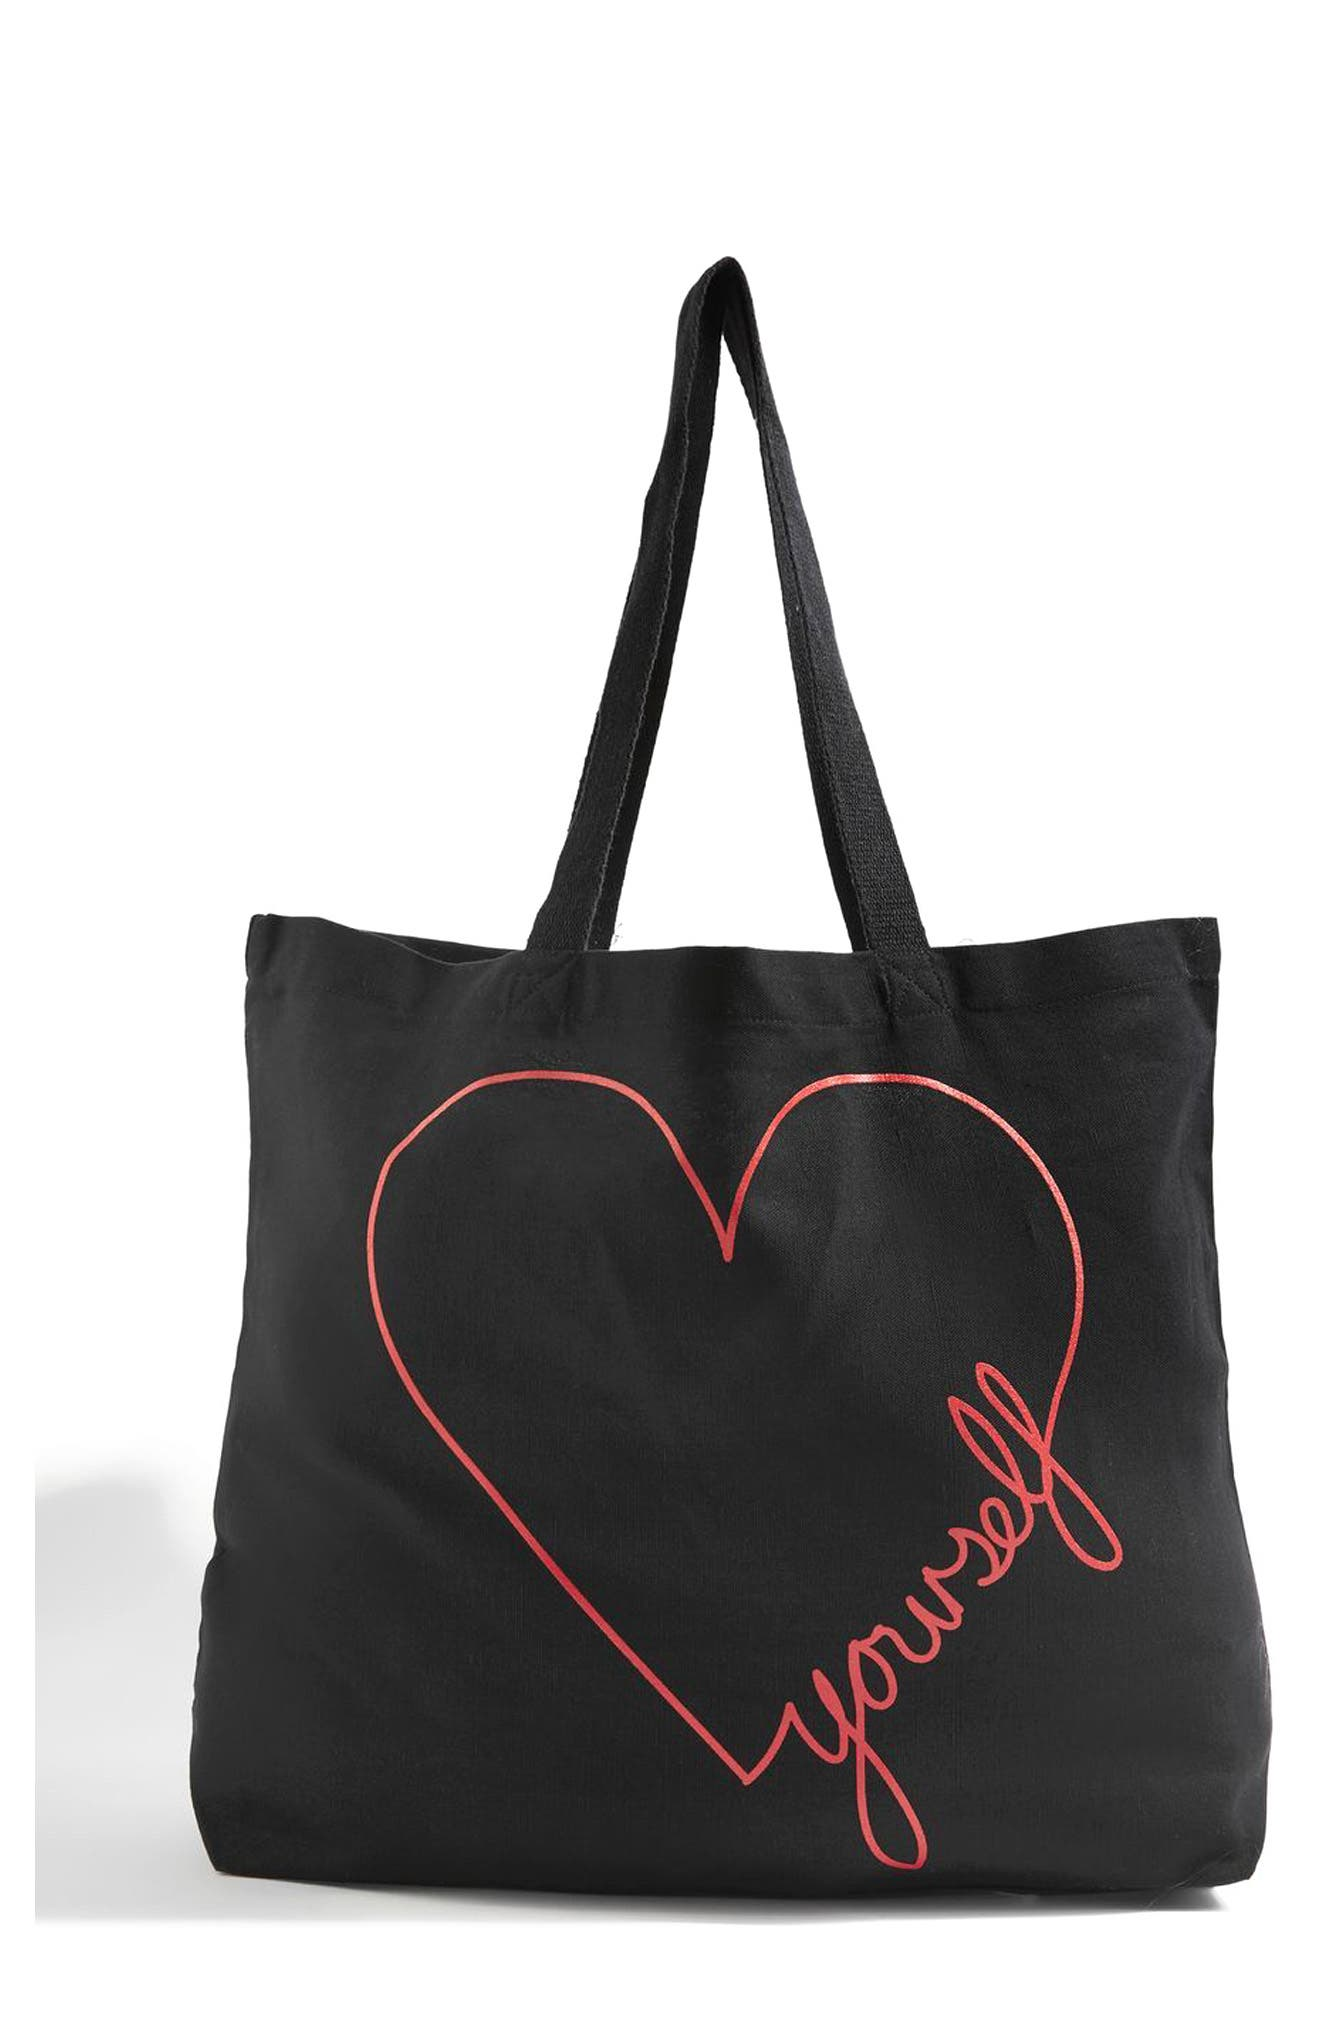 Love Yourself Canvas Tote Bag,                             Main thumbnail 1, color,                             001